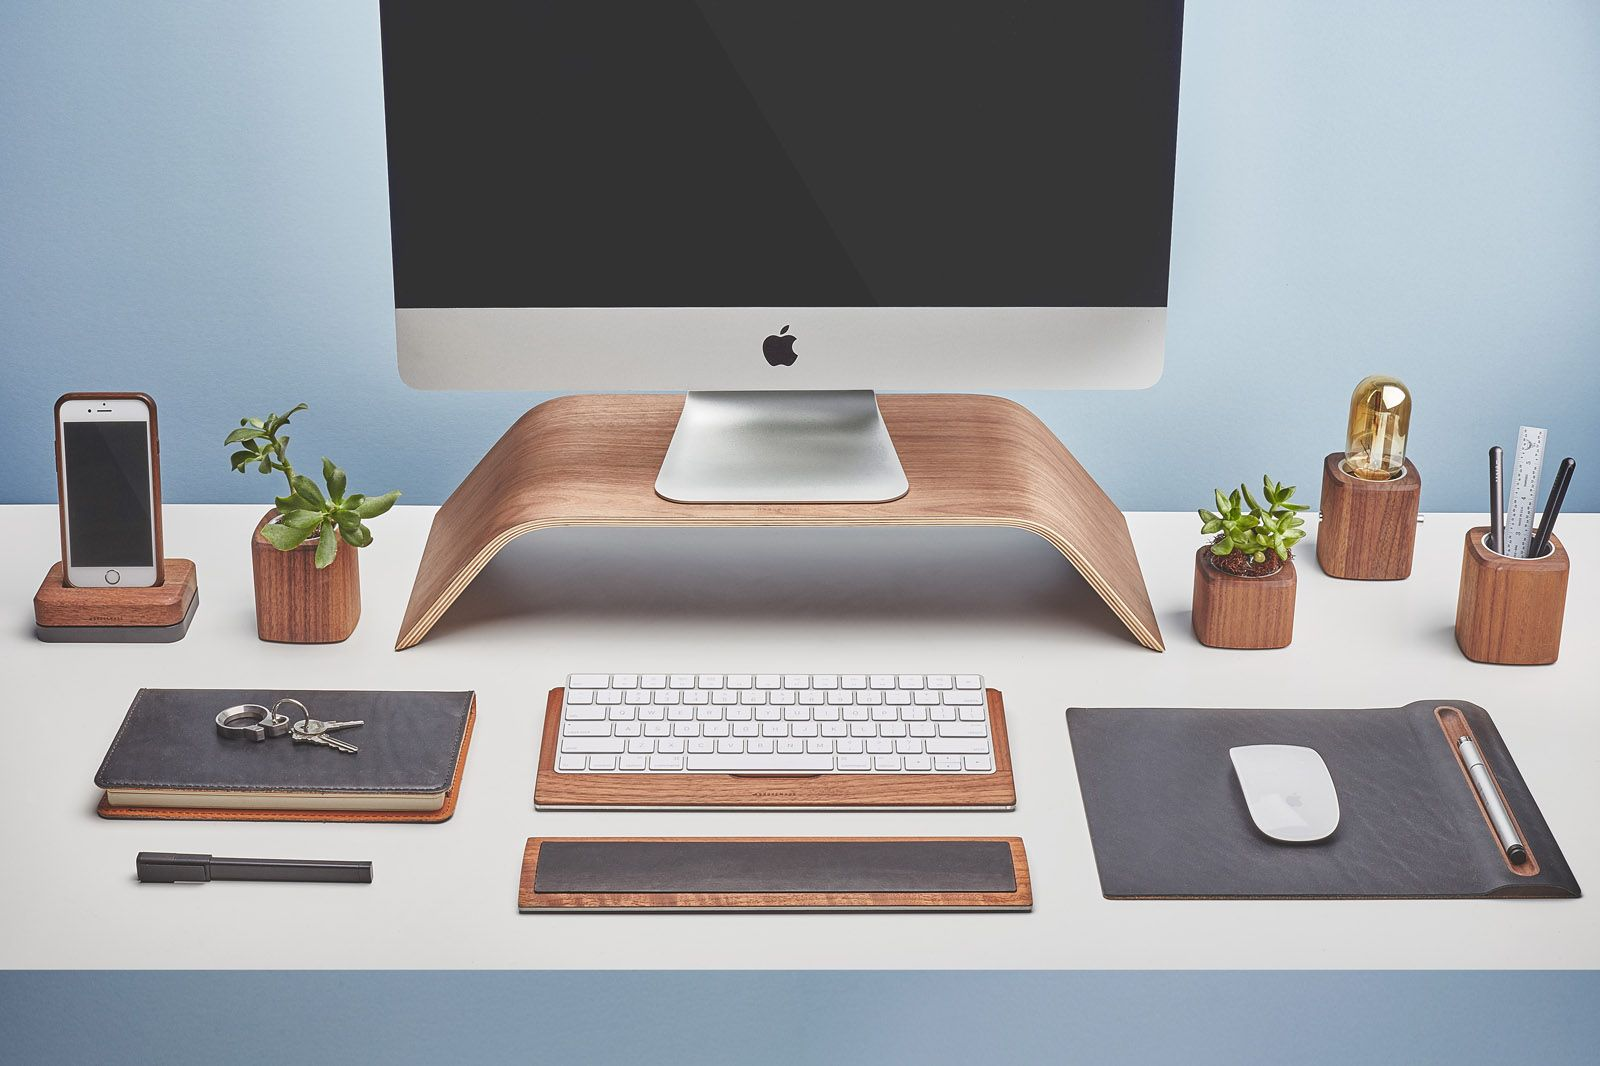 Nice Front View Of The Walnut Wood Grovemade Desk Collection With Walnut Wood  Monitor Stand, Leather And Cork Mouse Pad, Pen Cups, Desk Lamps, Planter,  ...